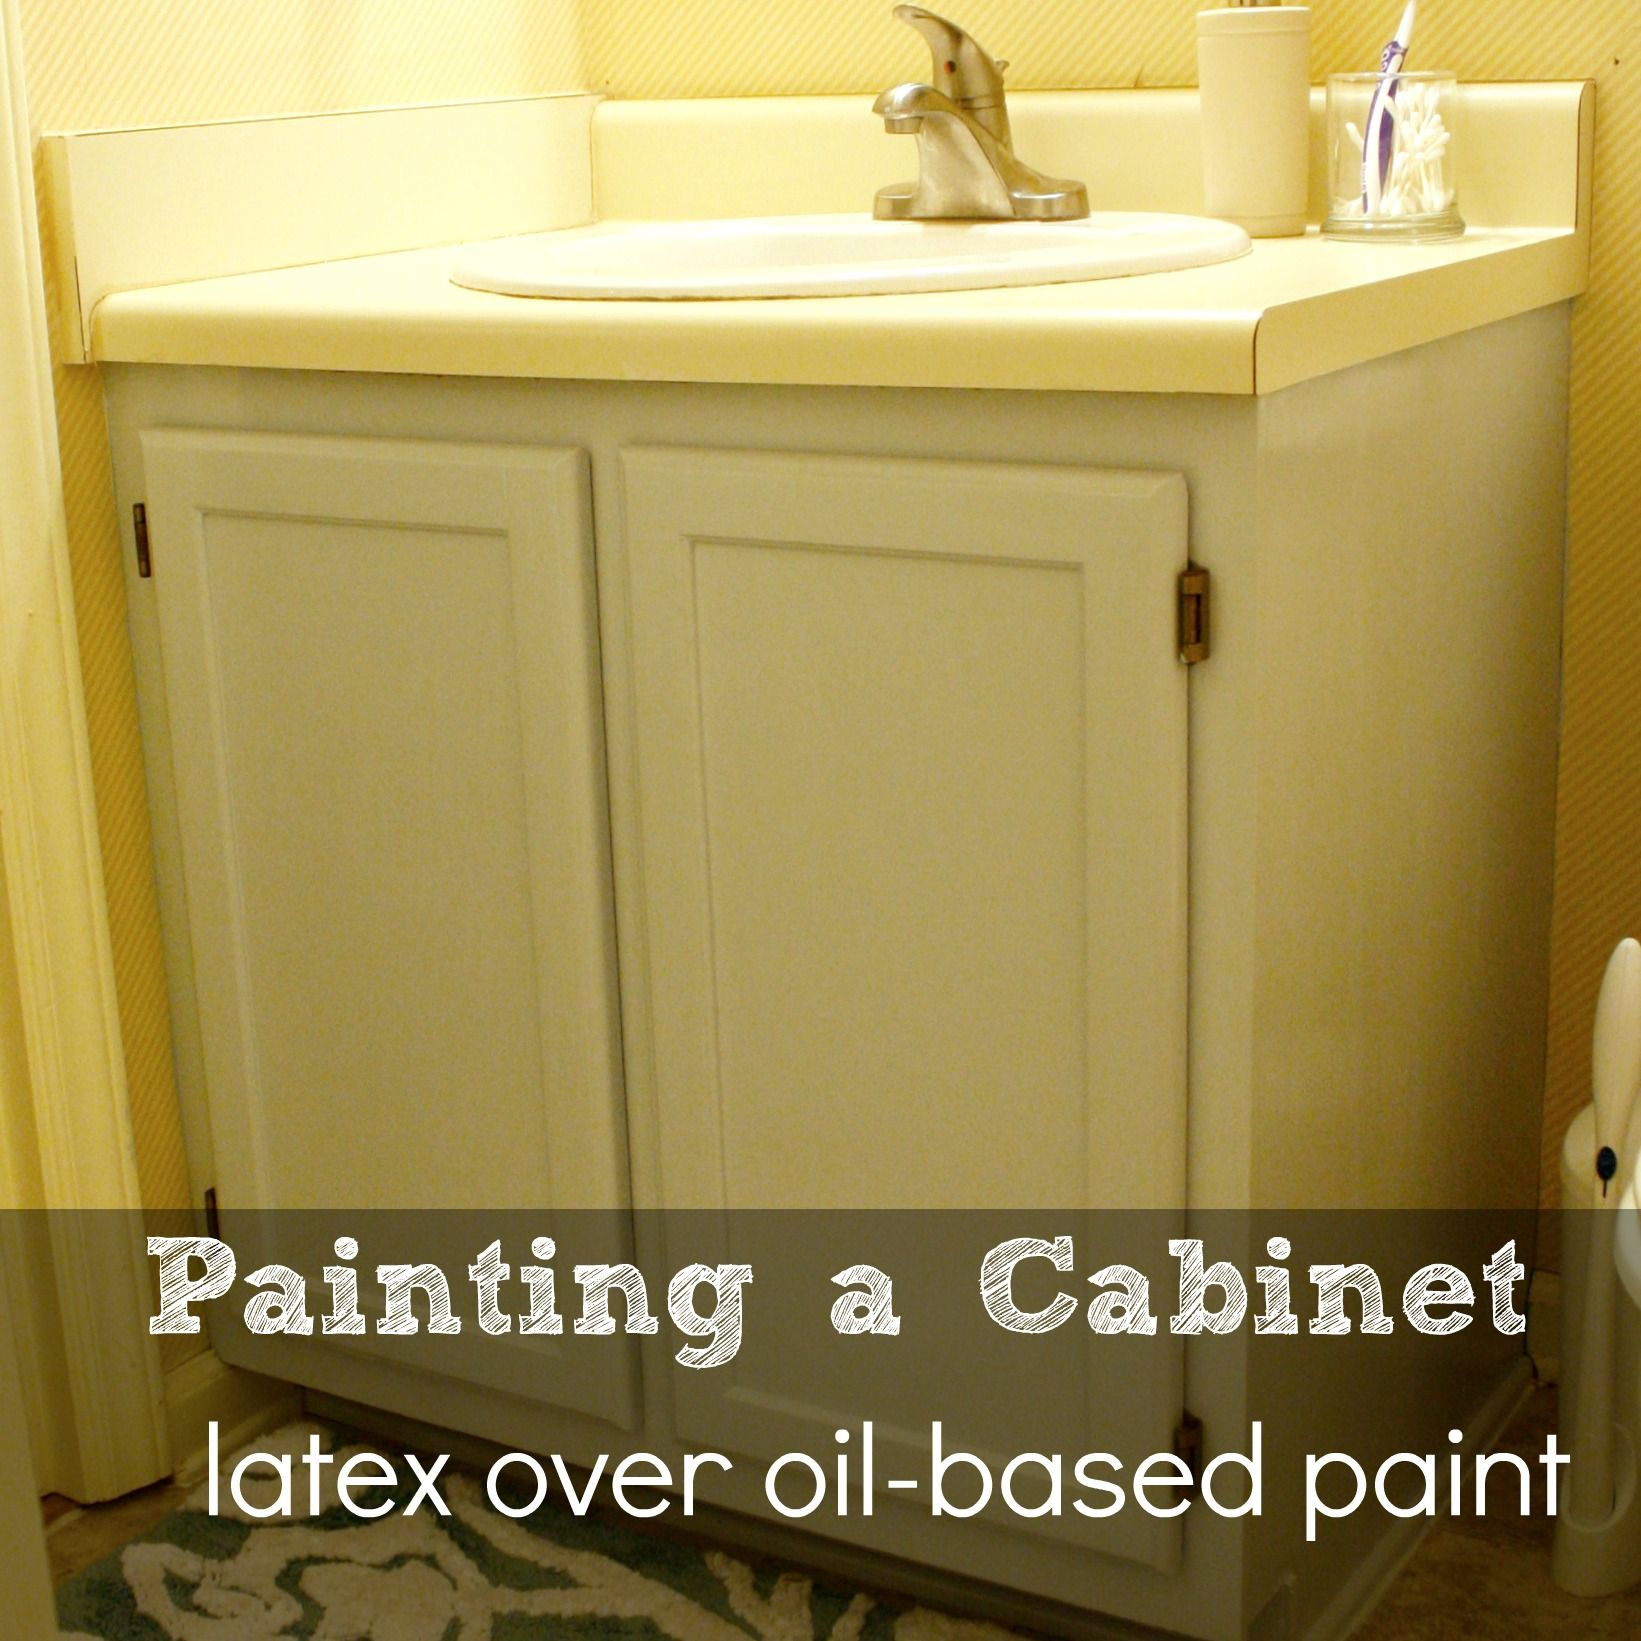 How To Fix Bathroom Ceiling Paint Peeling: Painting A Bathroom Cabinet (and How To Paint Over Oil